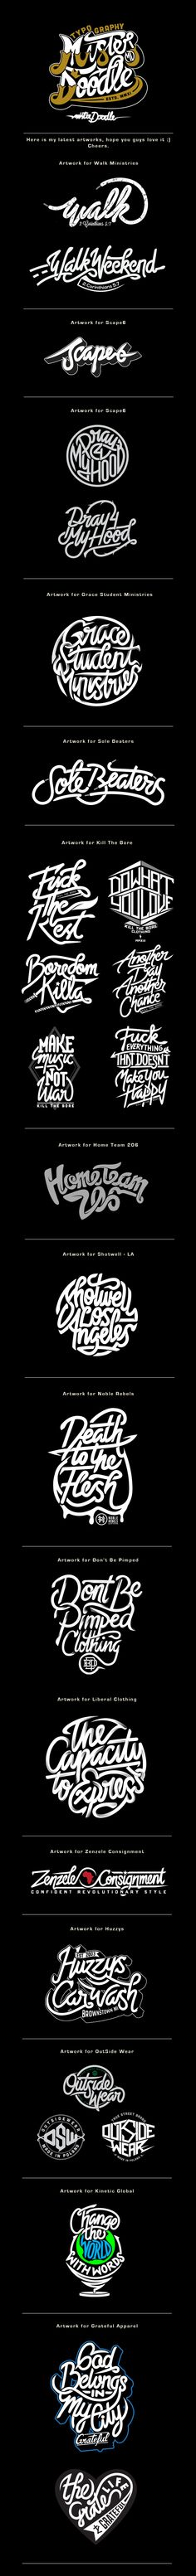 Hand Lettering Projects v.3 on Behance